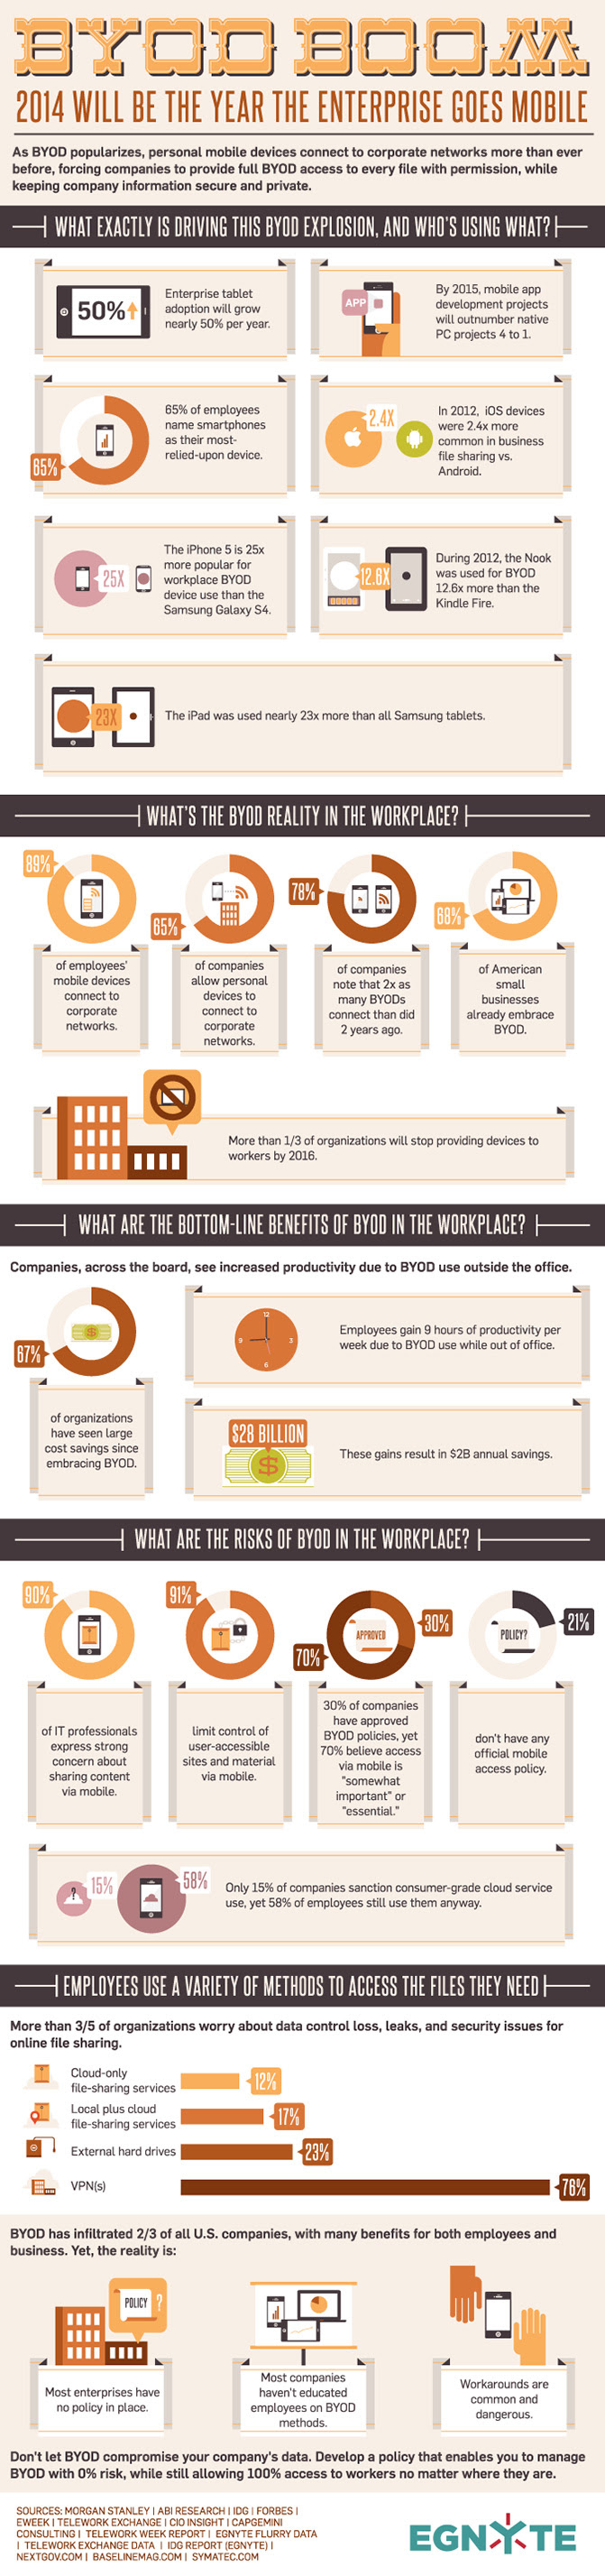 2014 will be the year enterprise goes mobile - BYOD boom - infographic